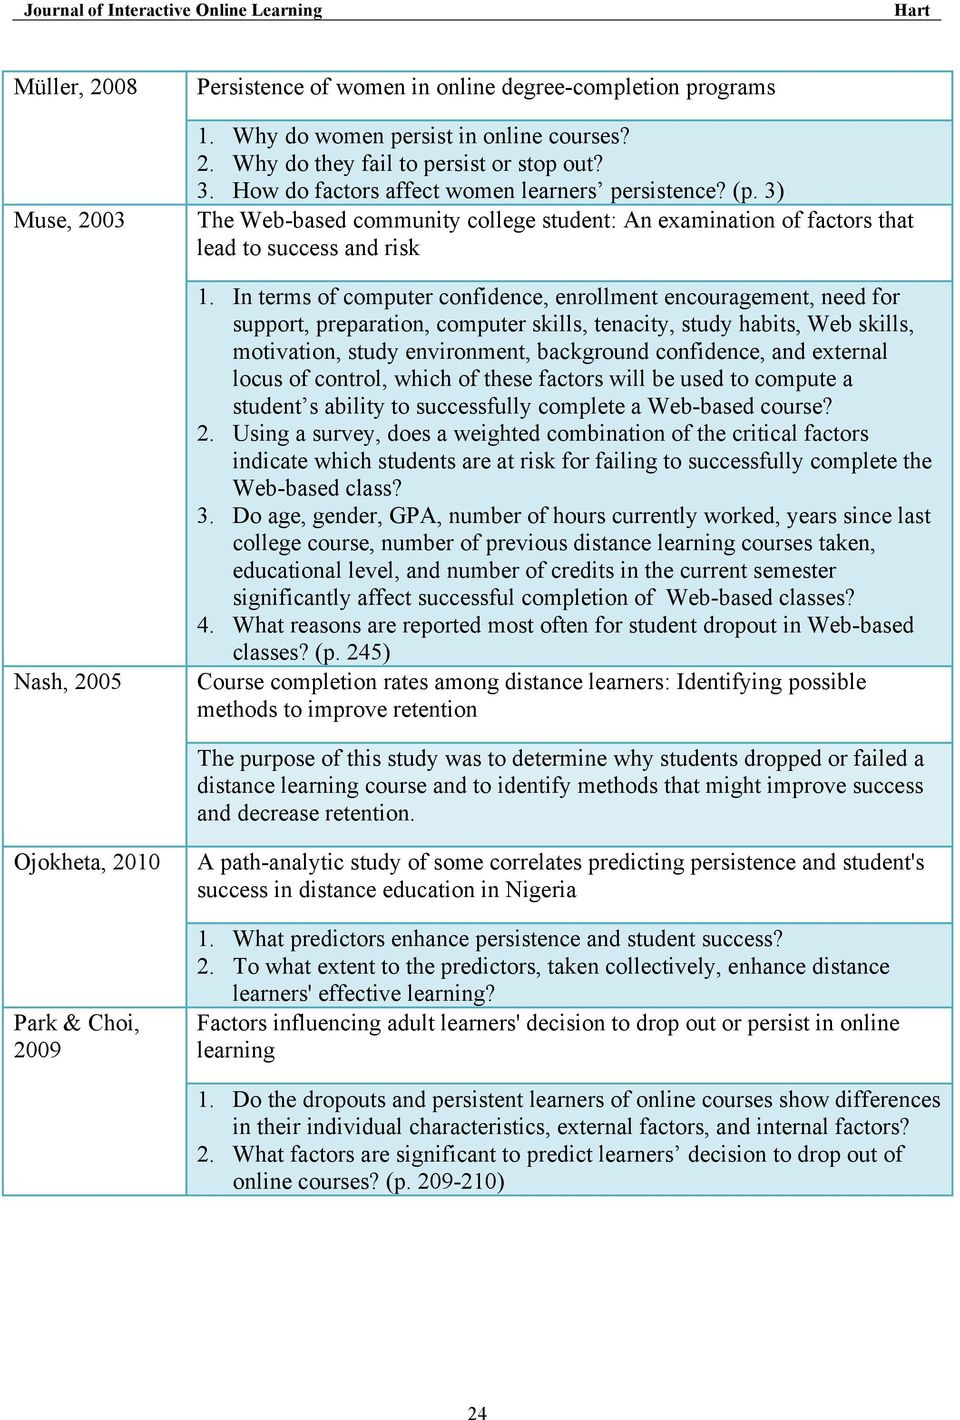 Factors Associated With Student Persistence in an Online